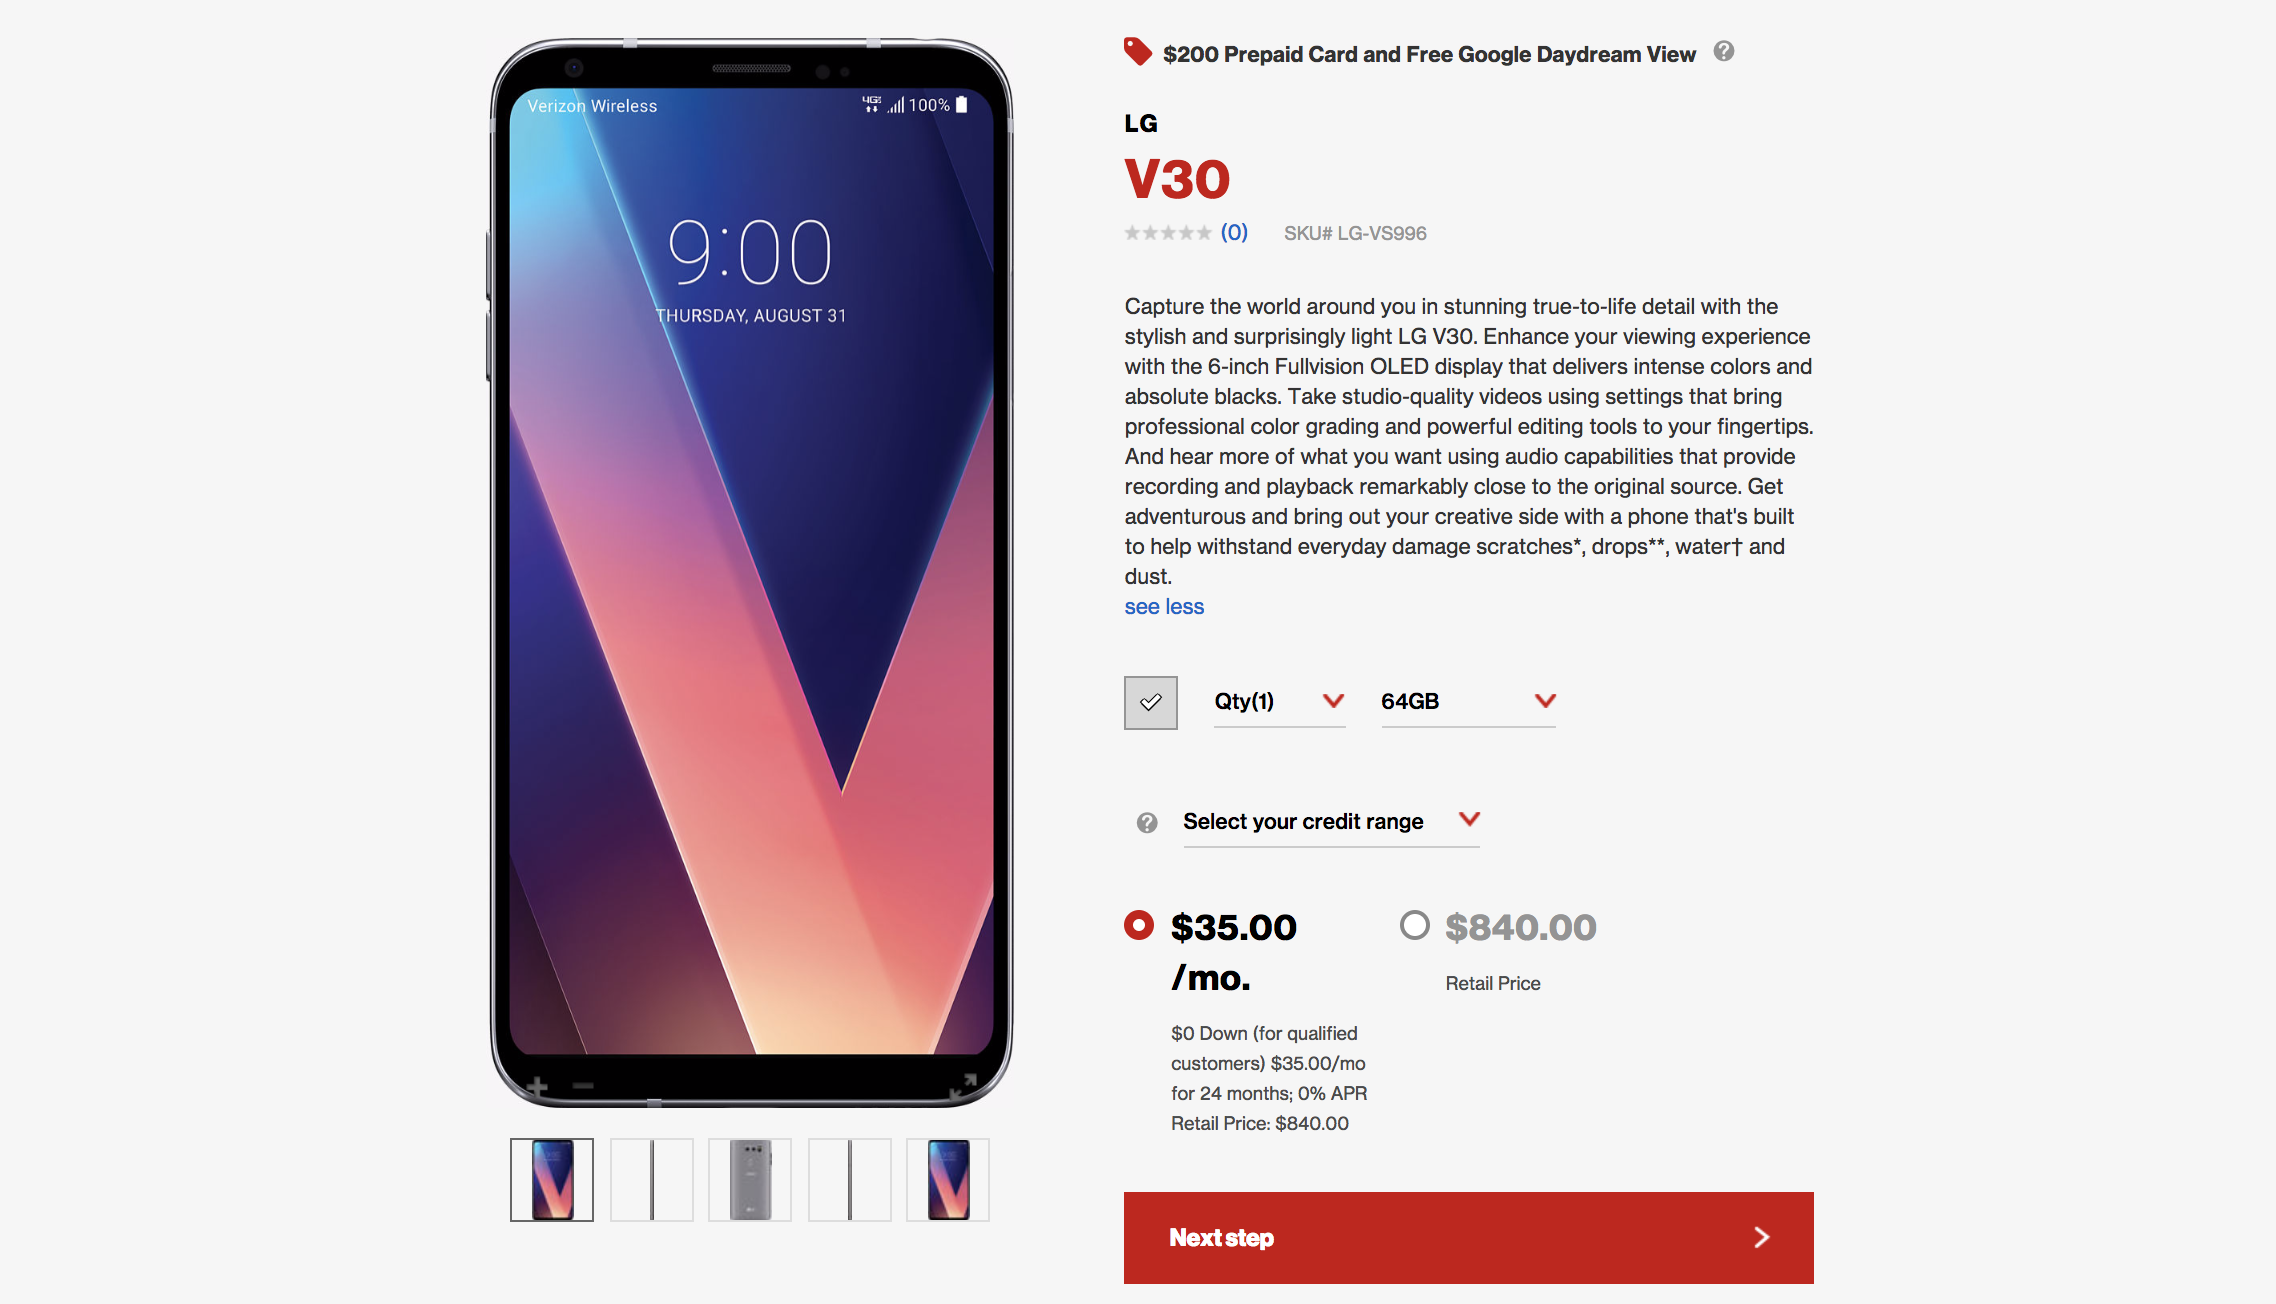 Update: T-Mobile also has it now] LG V30 is now available to order